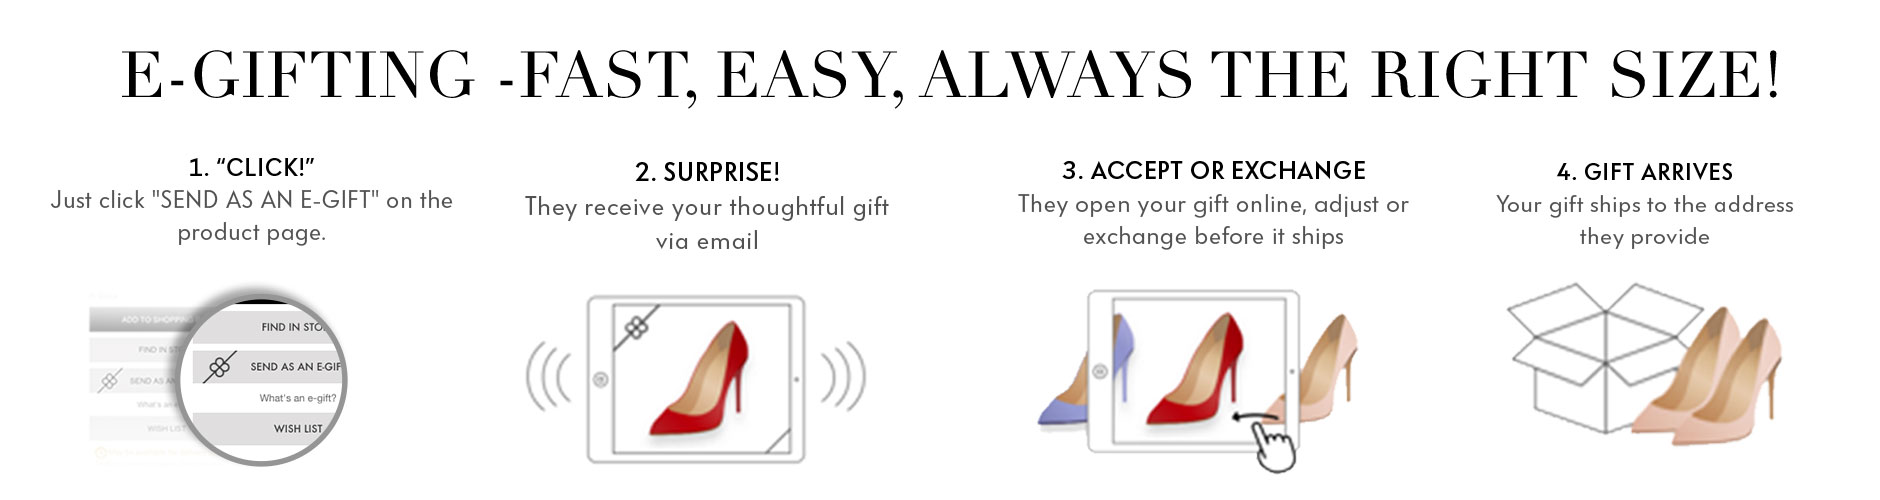 E-Gifting - The fastest route to the perfect gift